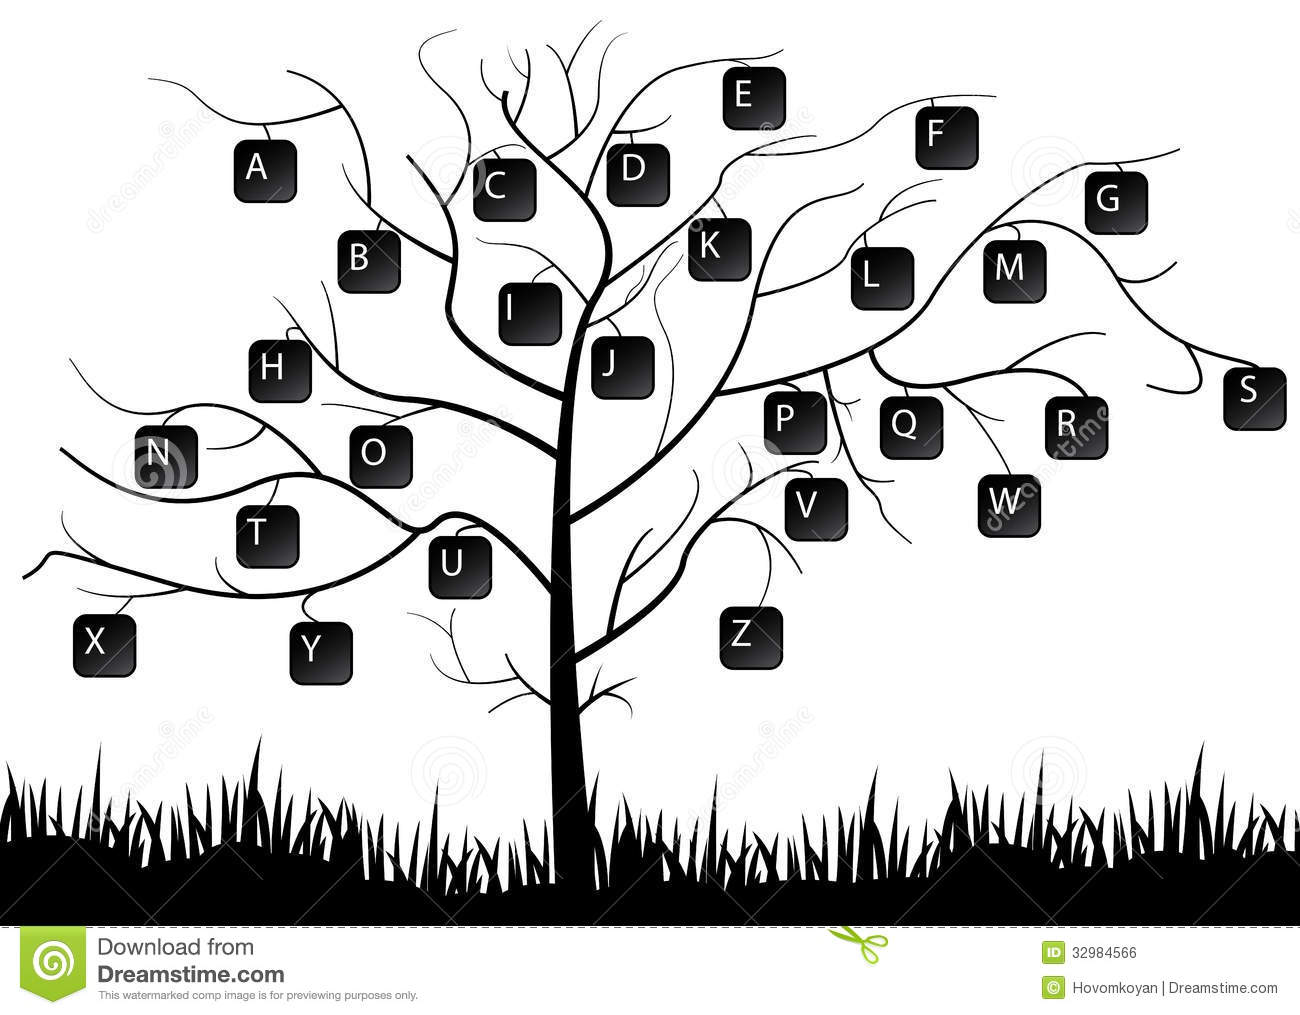 Keyboard Tree Royalty Free Stock Image